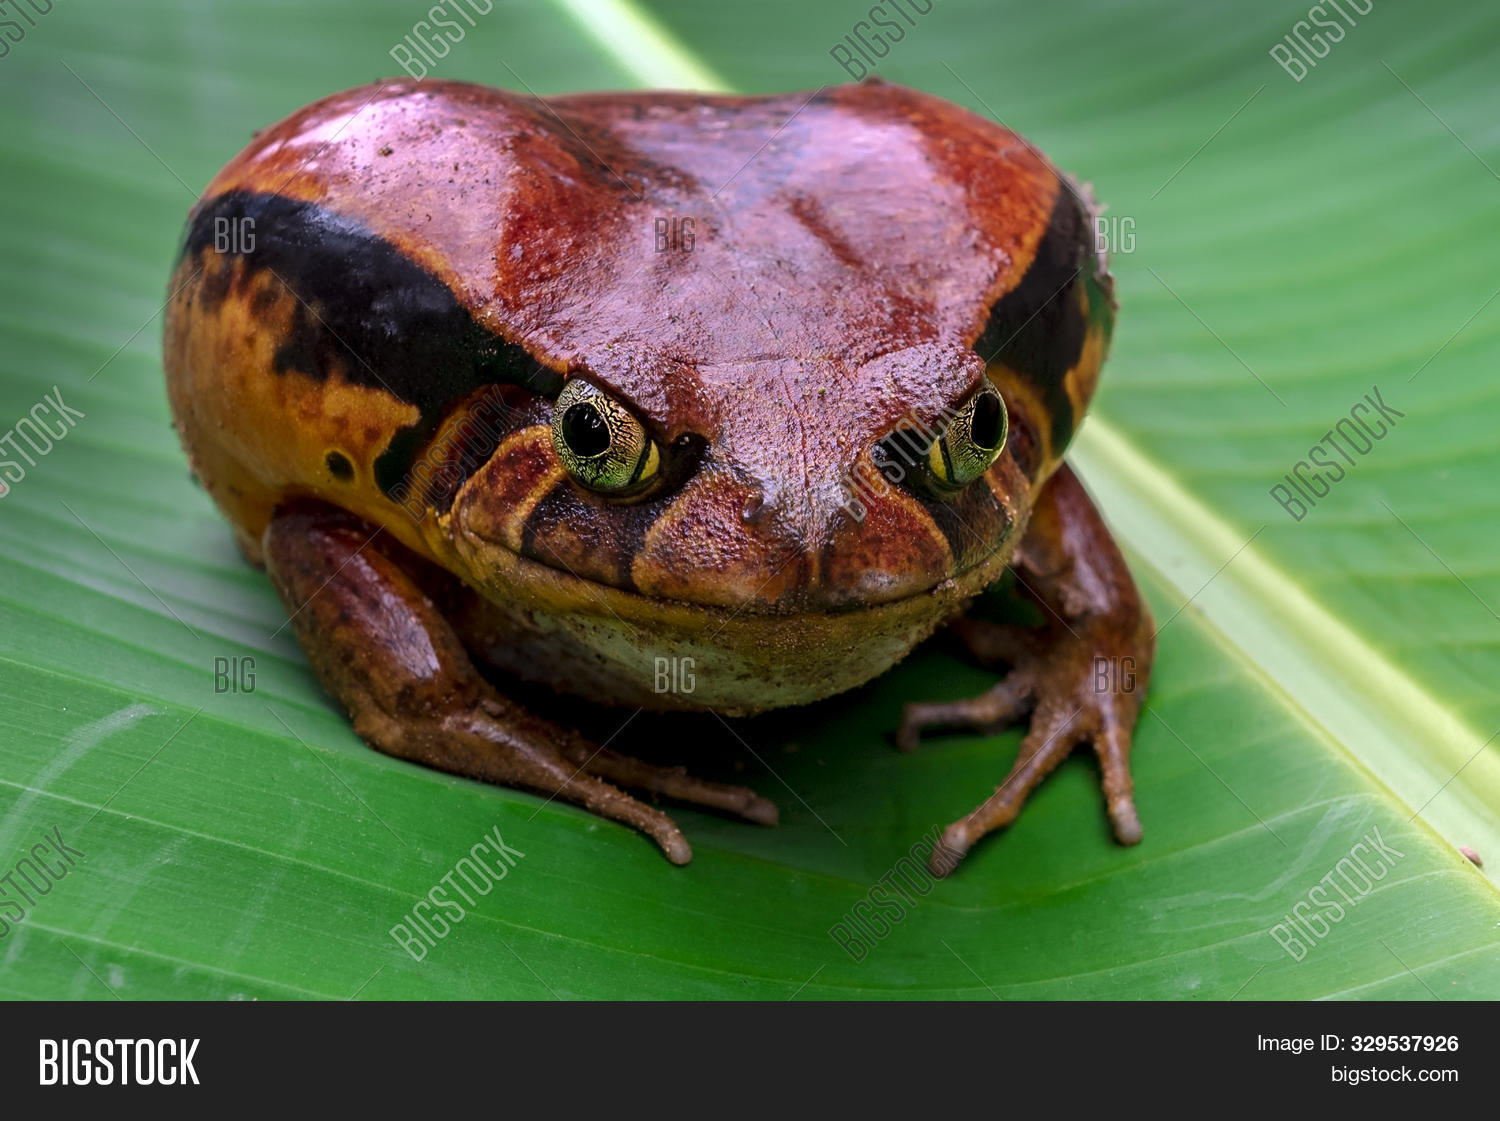 Tomatofrog, One Of The Bigger Amphibians In Madagascar